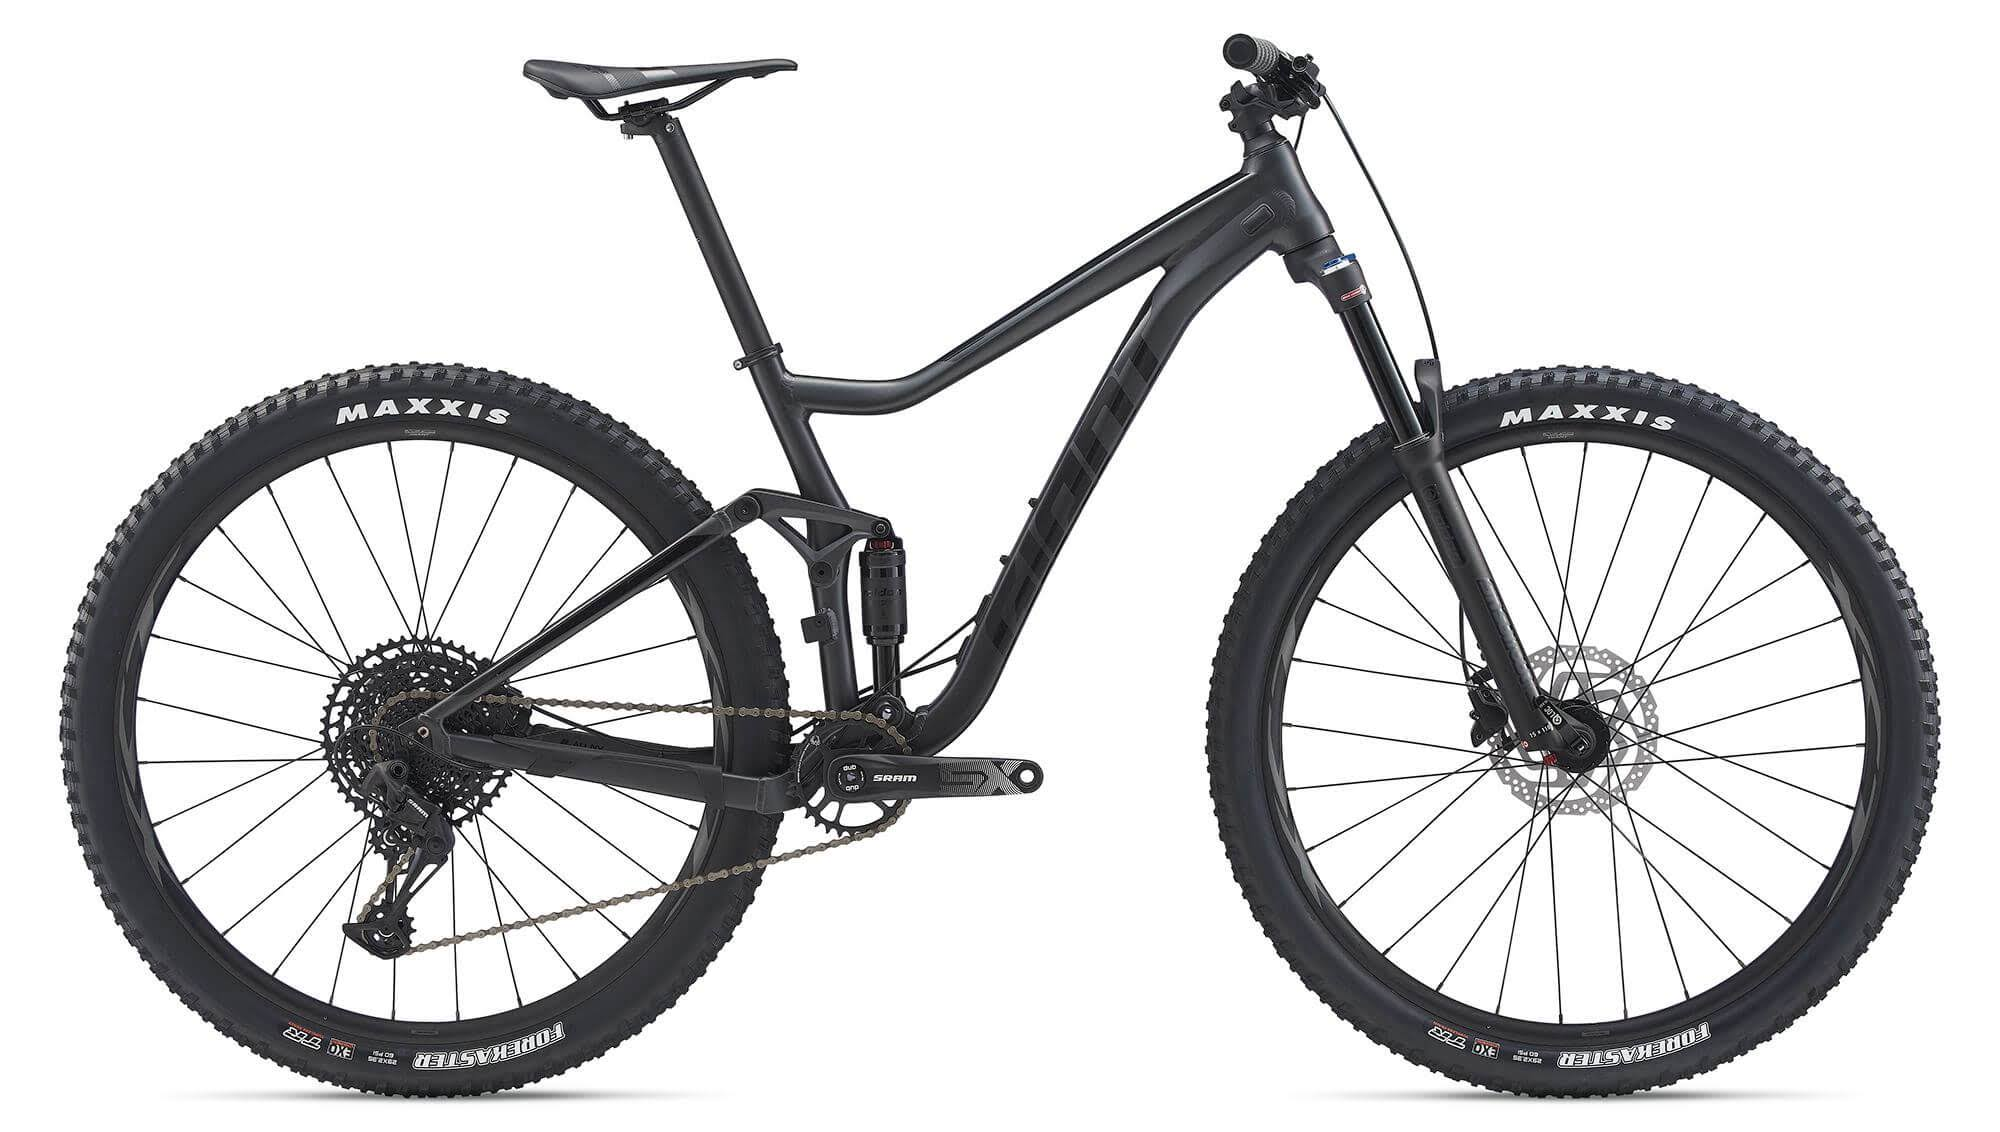 Giant Stance 29er Mountain Bike - Gunmetal Black